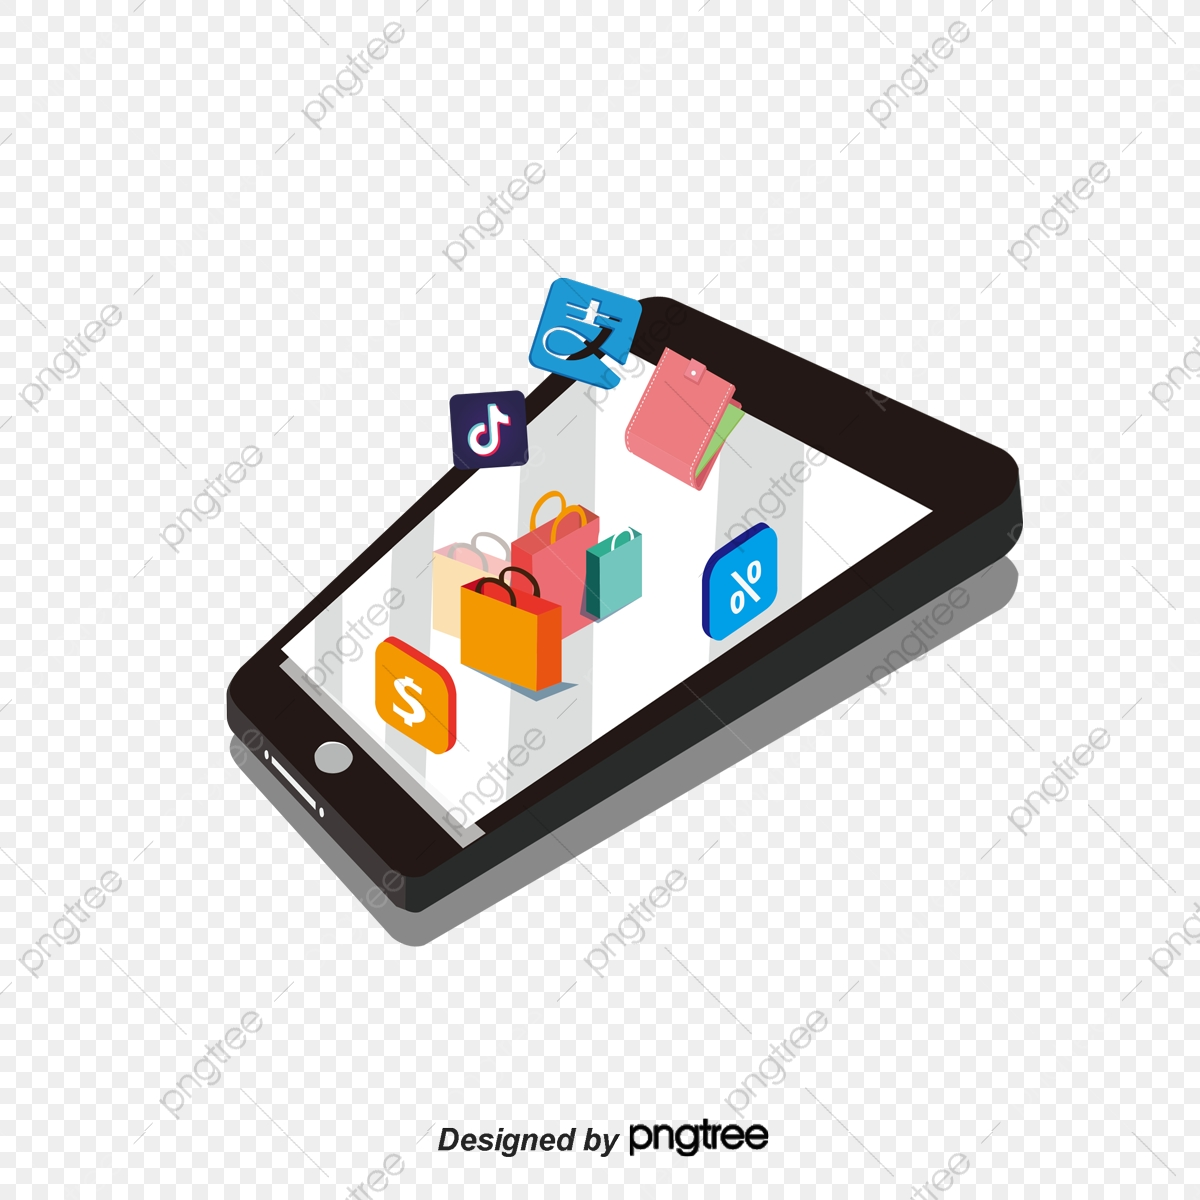 Mobile Application, App, Icon, Music PNG Transparent Image and